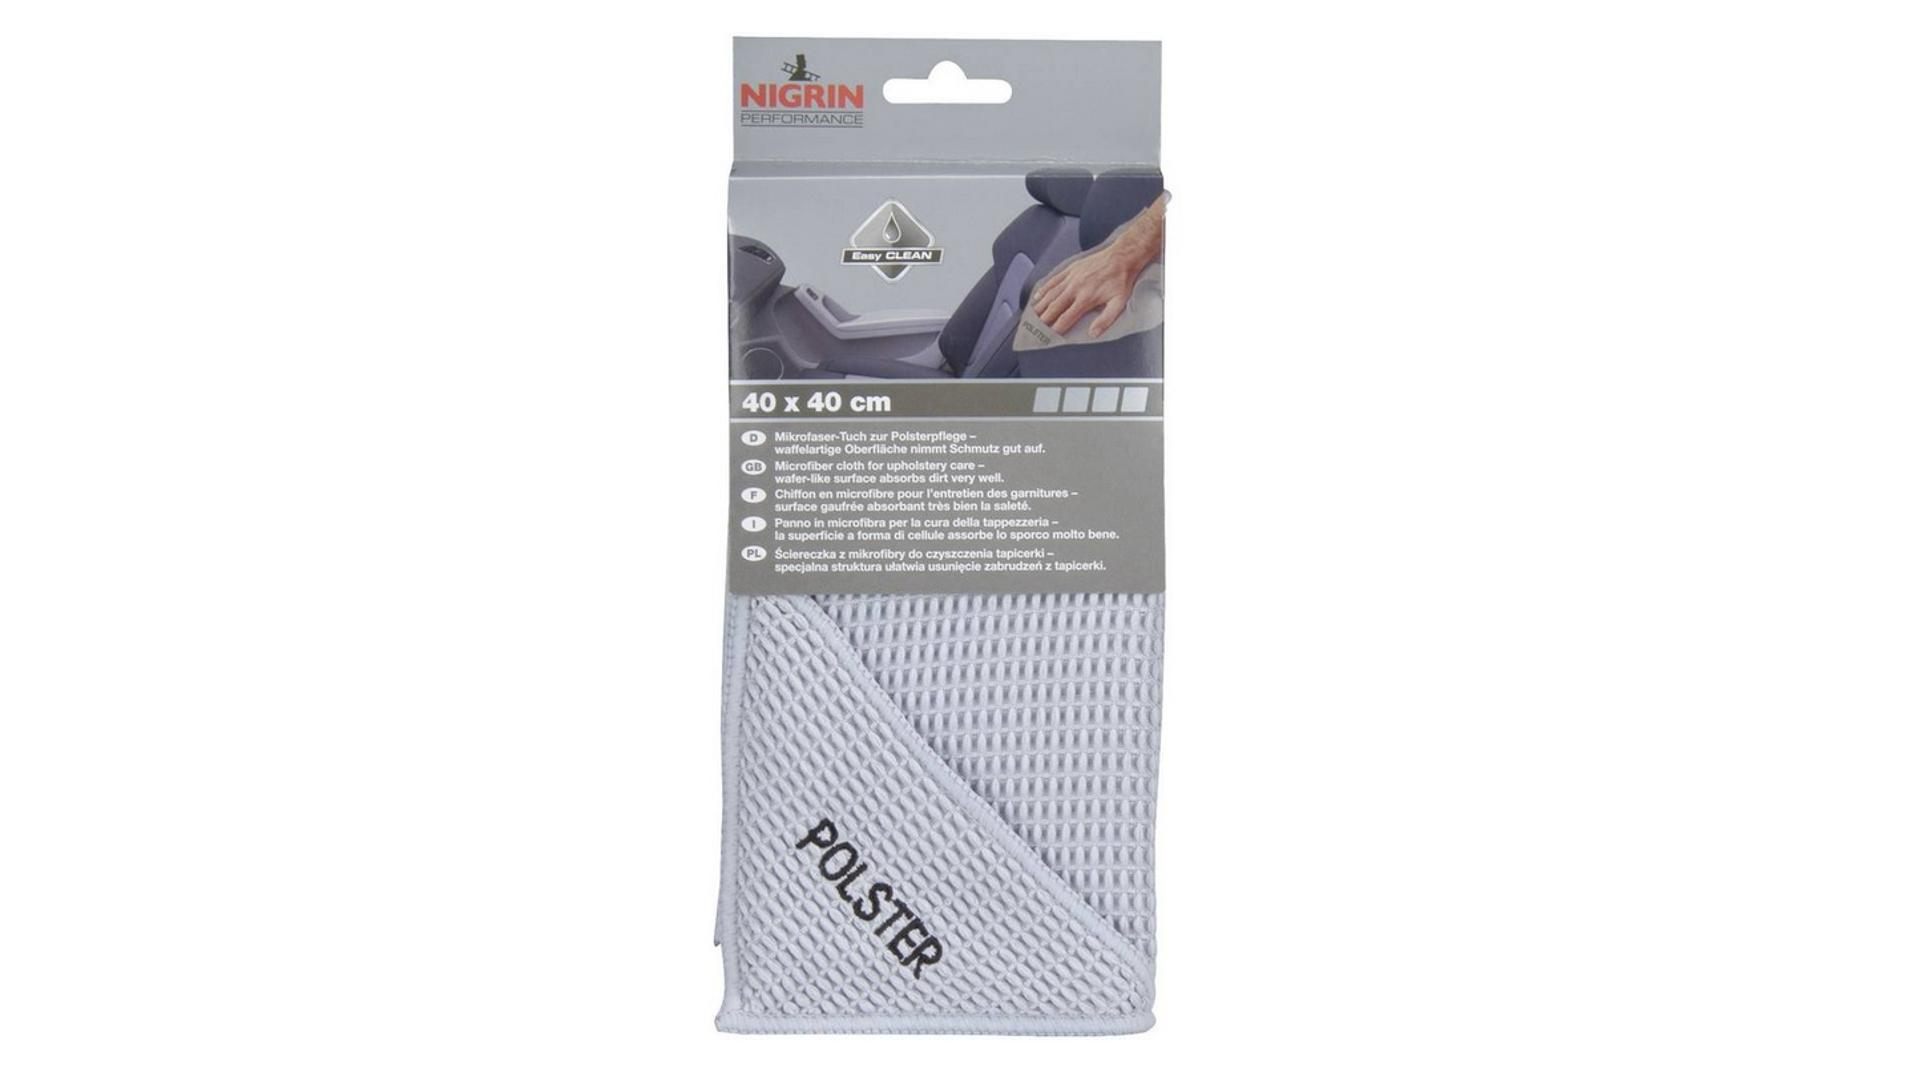 NIGRIN Microfibre cloth for upholstery